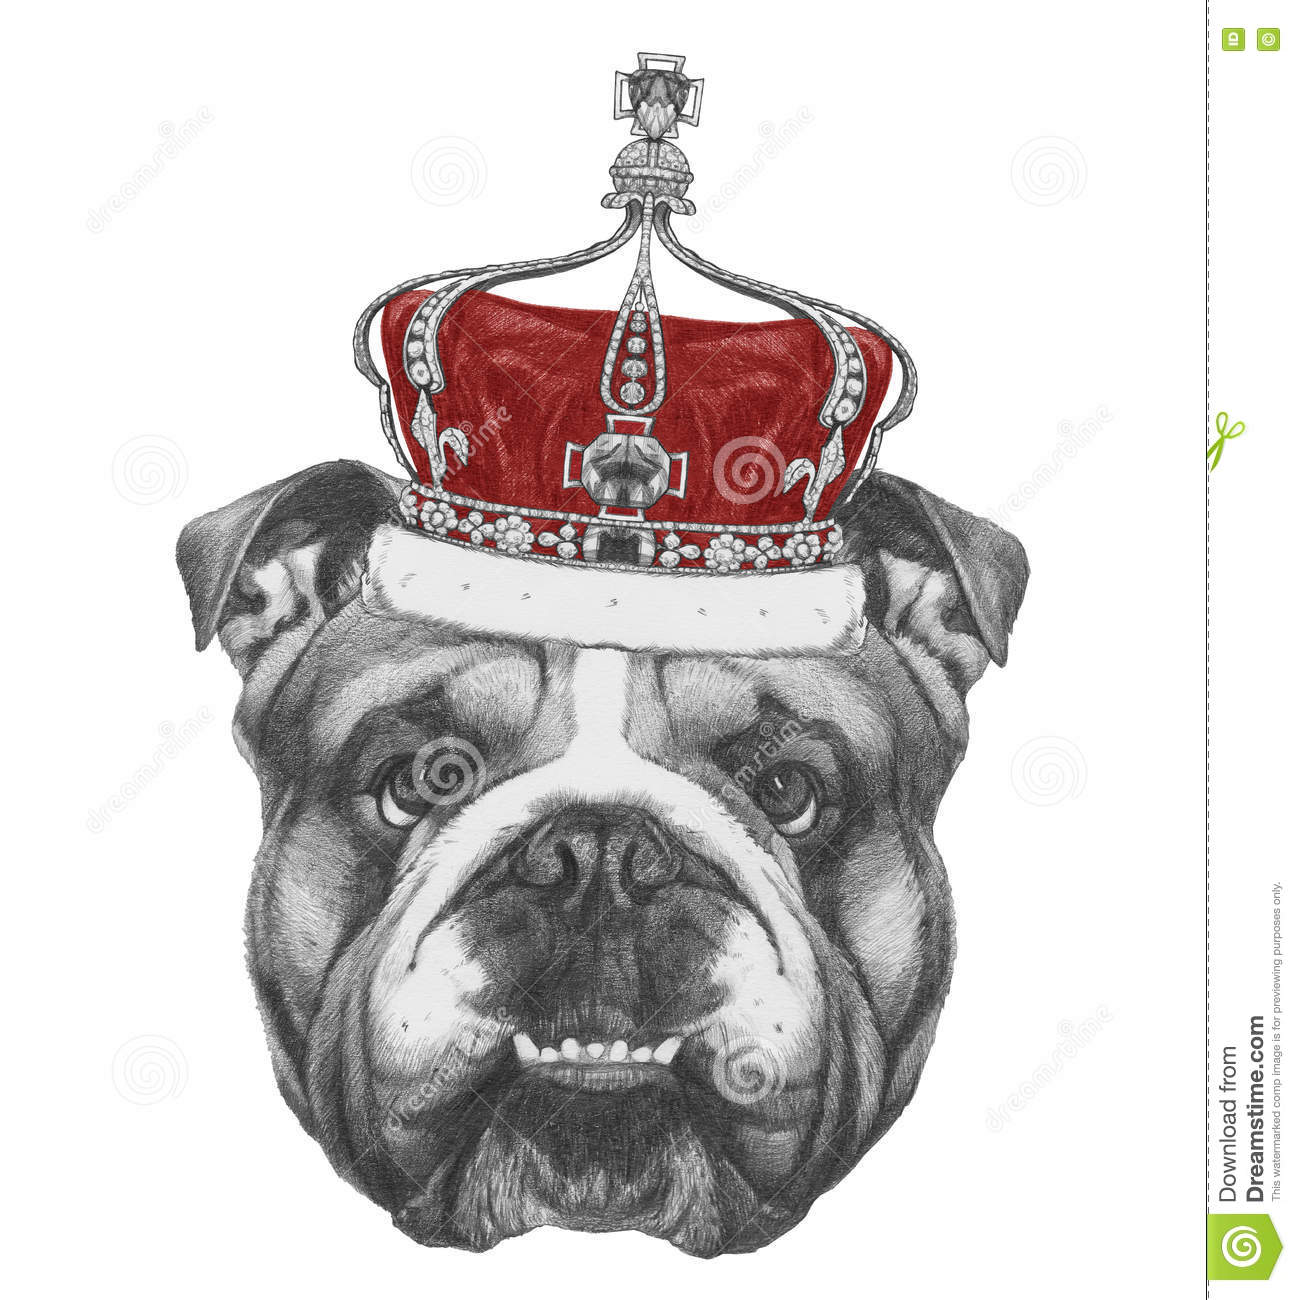 Bouledogue Decoration Design Dessin Original De Bouledogue Anglais Avec La Couronne